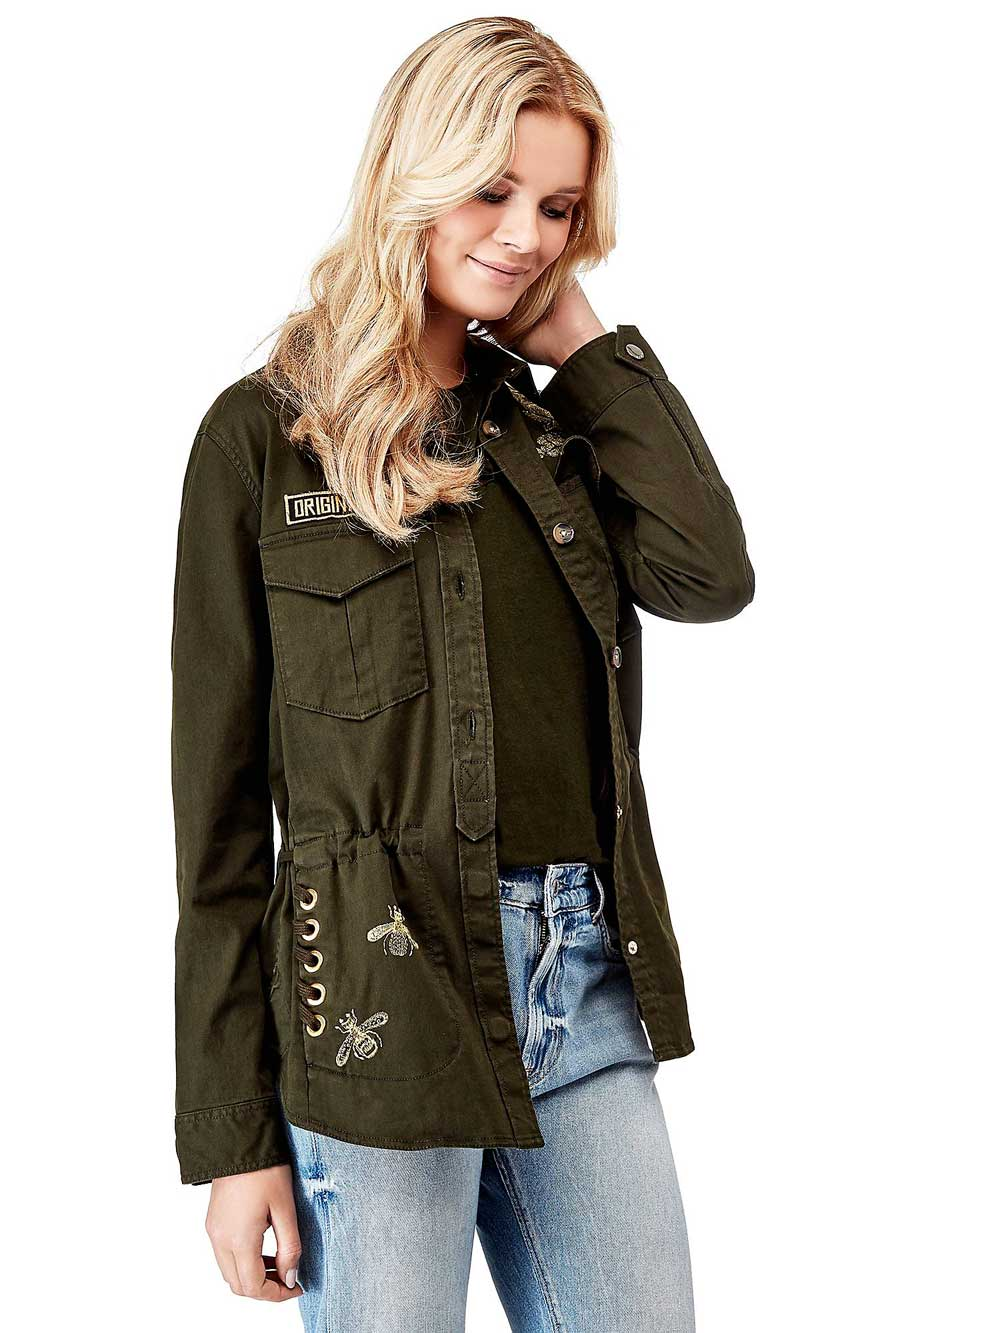 Guess military jacket